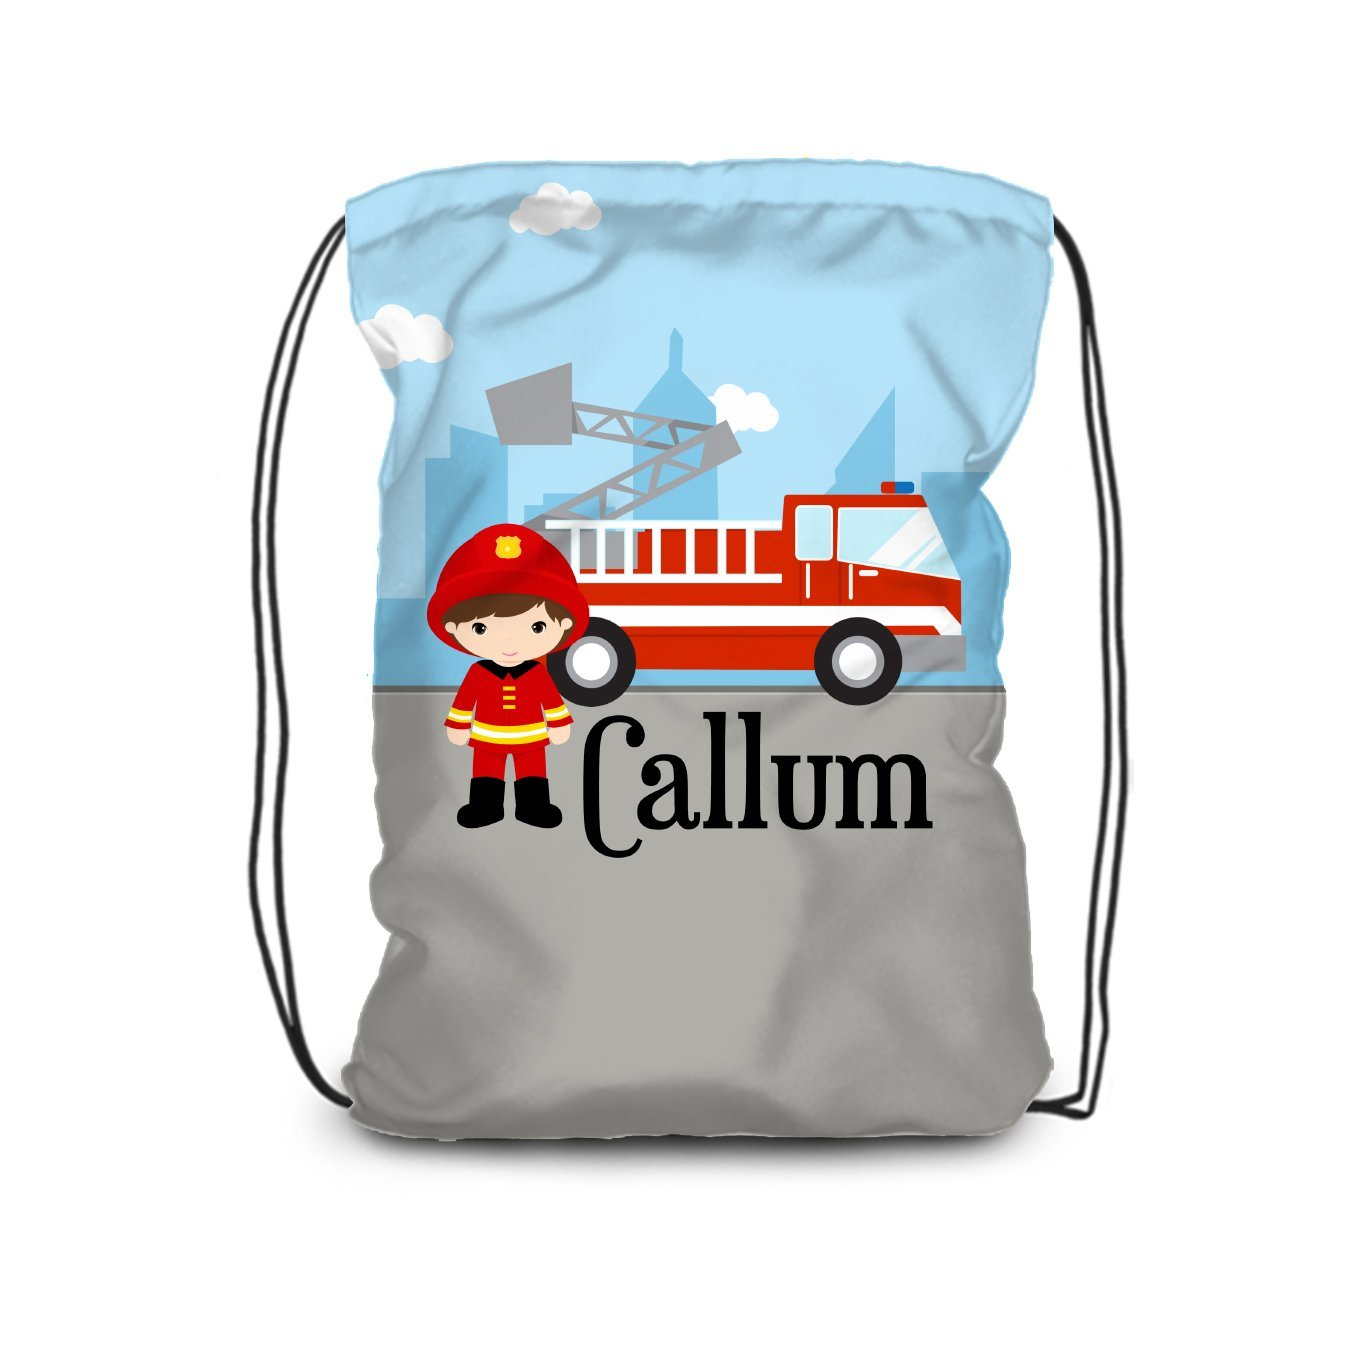 Fire Truck Drawstring Backpack - Big City Firefighter Bag